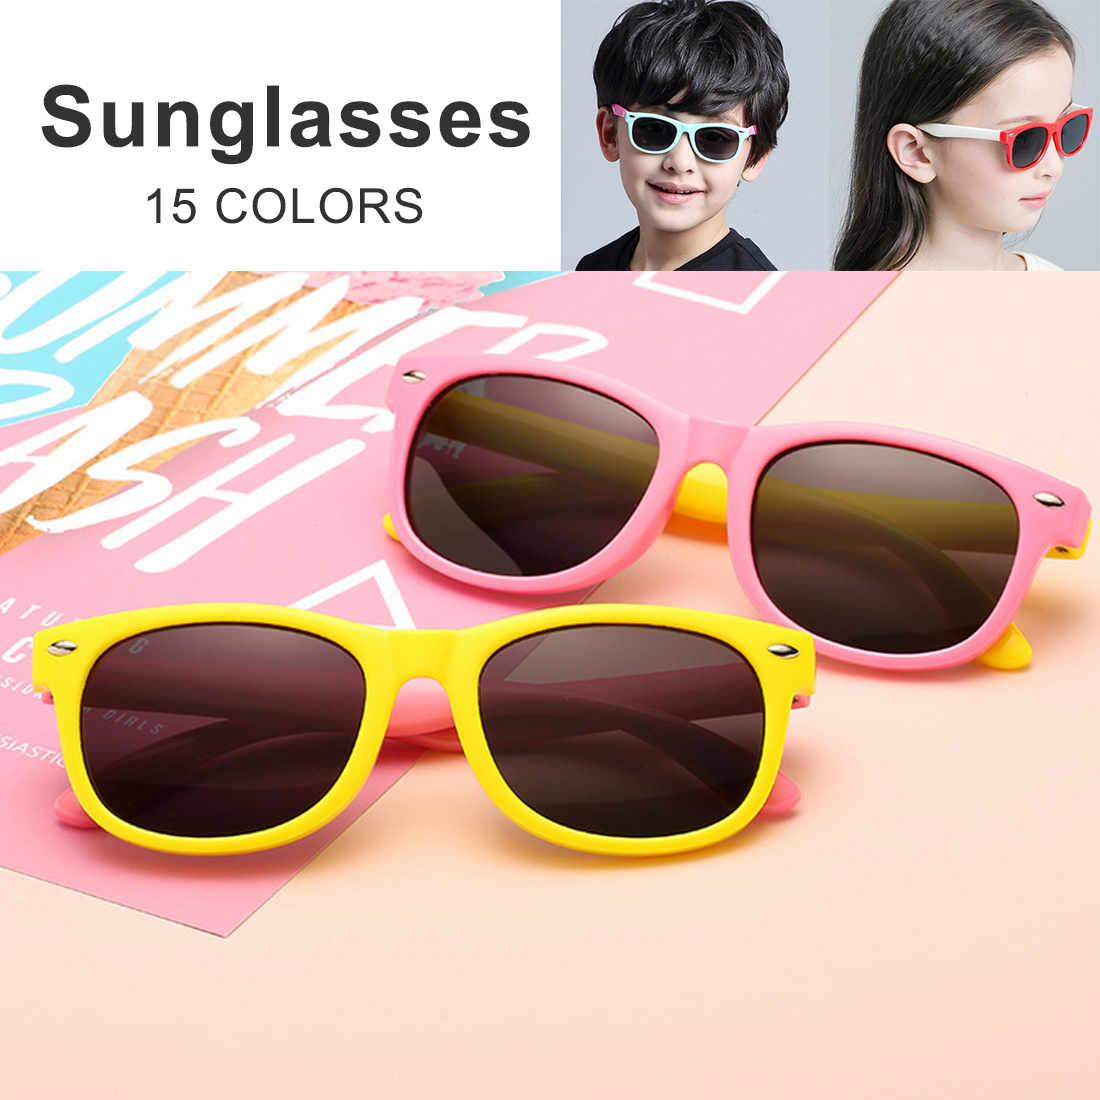 Mirror Kids Sunglasses with Case Boys Girls Polarized Silicone Safety Sun Glasses Gift For Children Baby UV400 Gafas in Sunglasses from Mother Kids